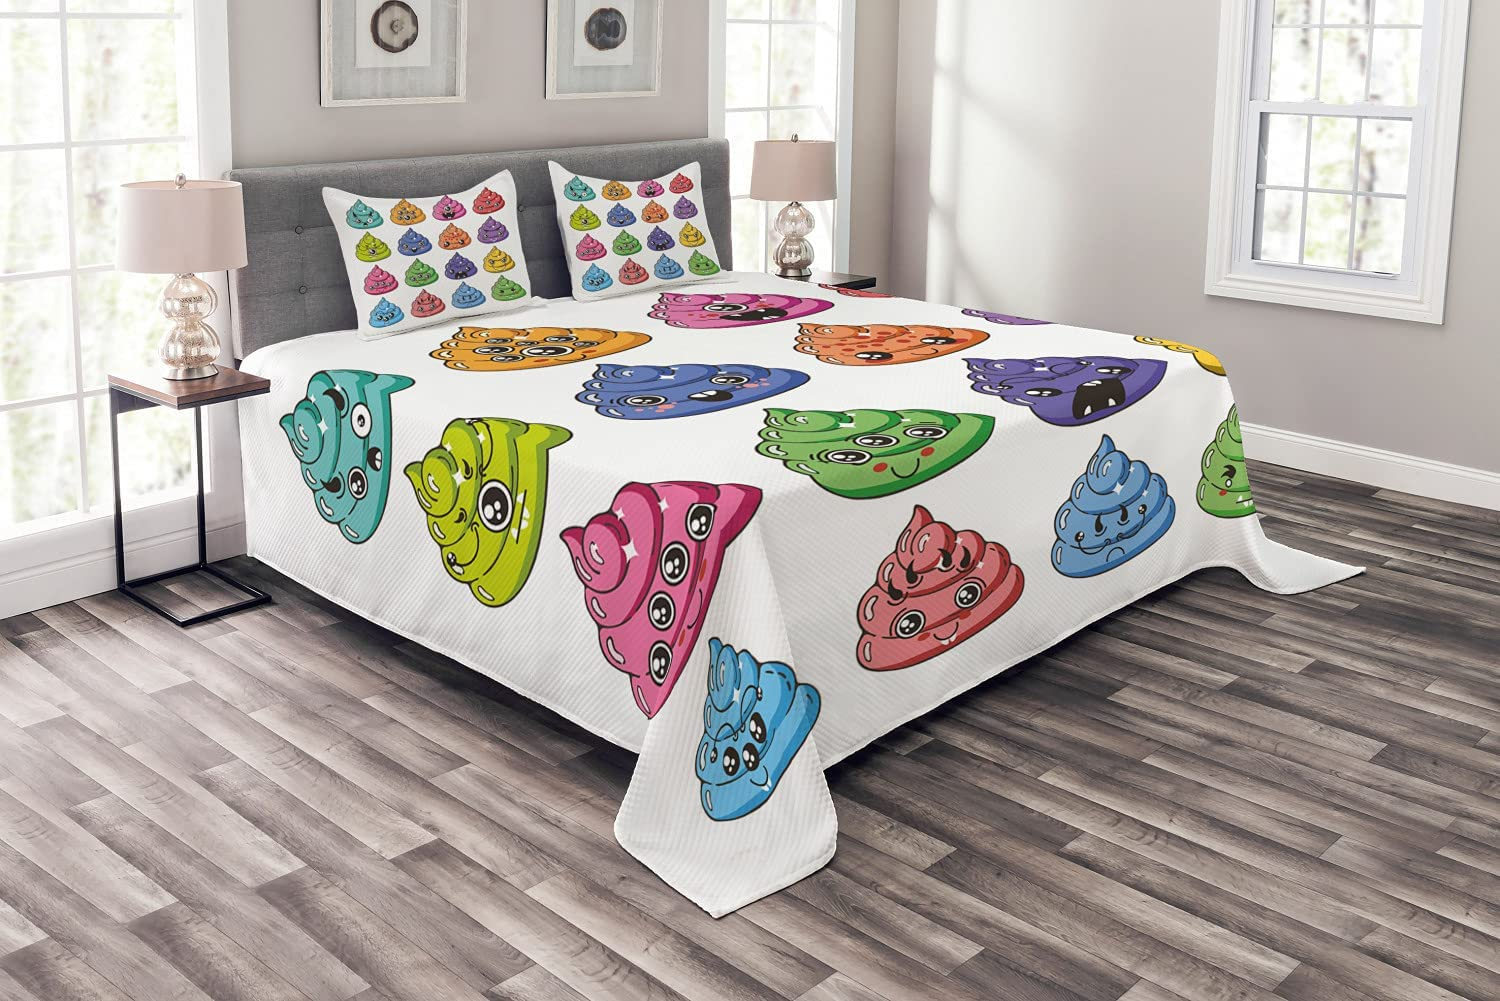 Gorgeous Ambesonne Poop Emoticon Milwaukee Mall Bedspread Happy Pattern Colorful Kaw of